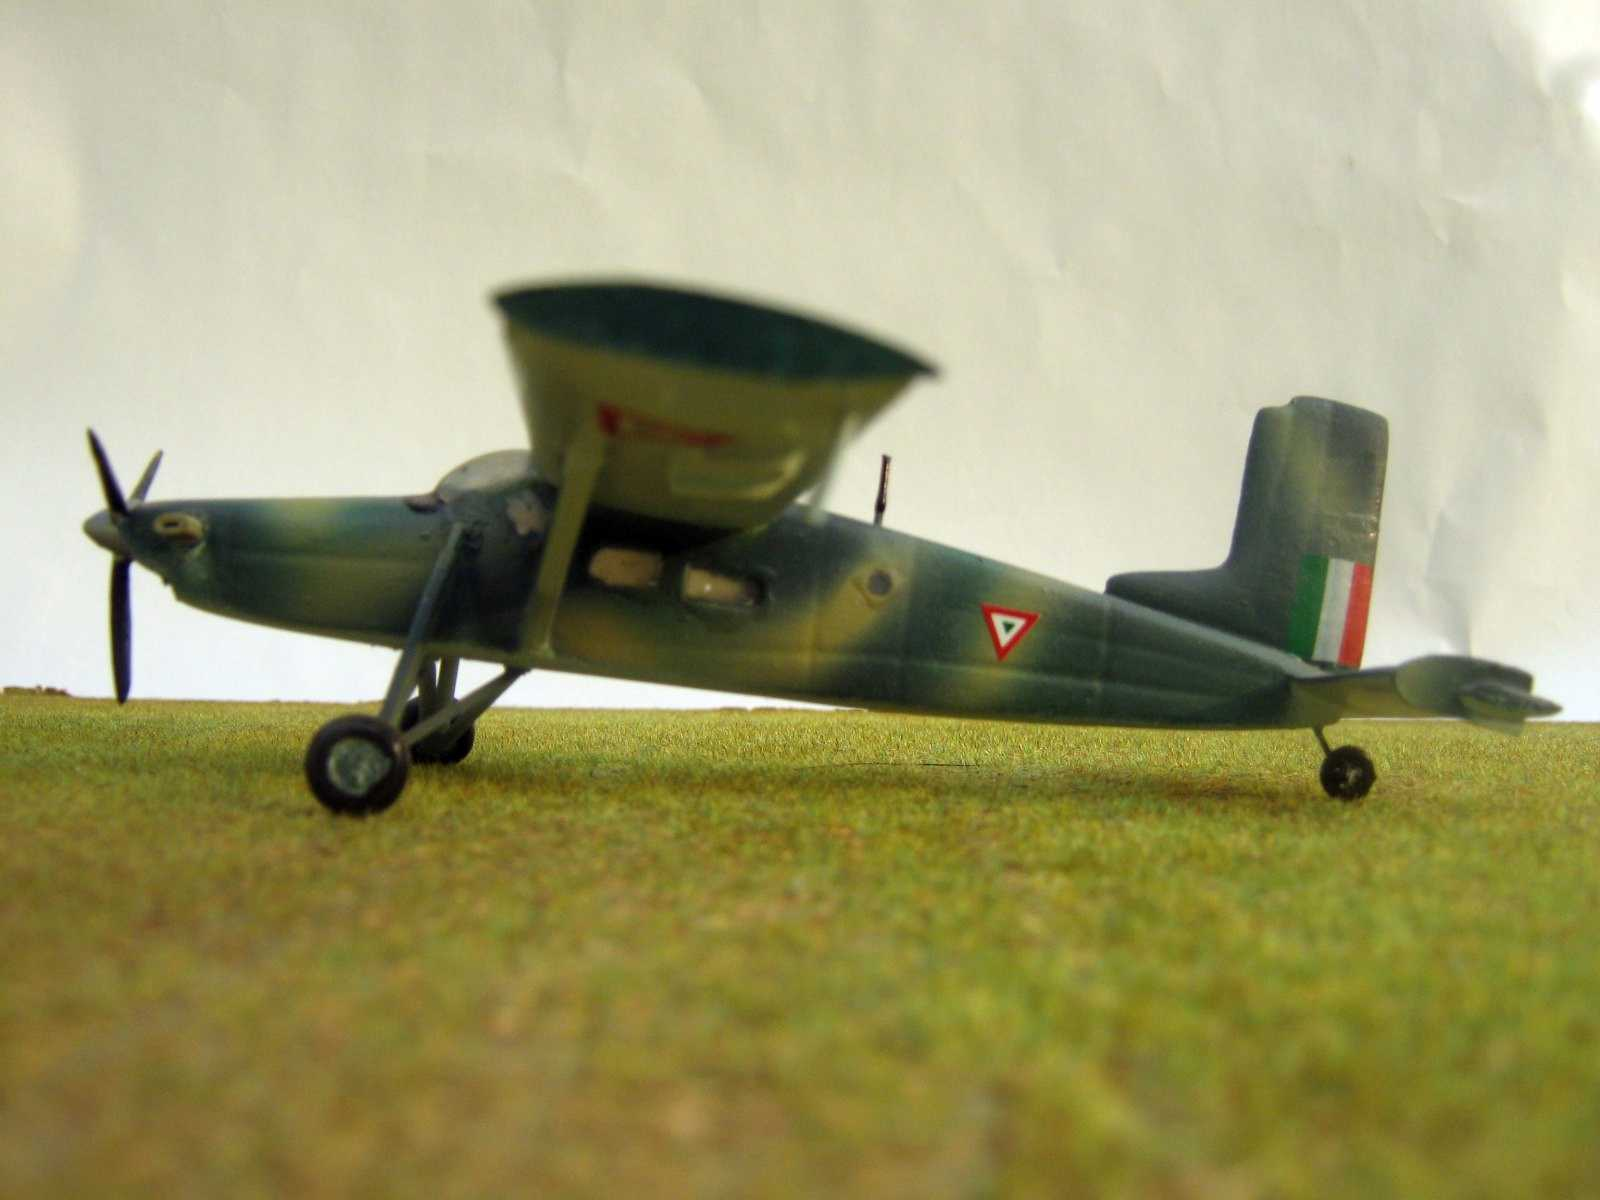 Le Meilleur Yellowairplane Com Model Airplanes A Whole Collection Of Ce Mois Ci